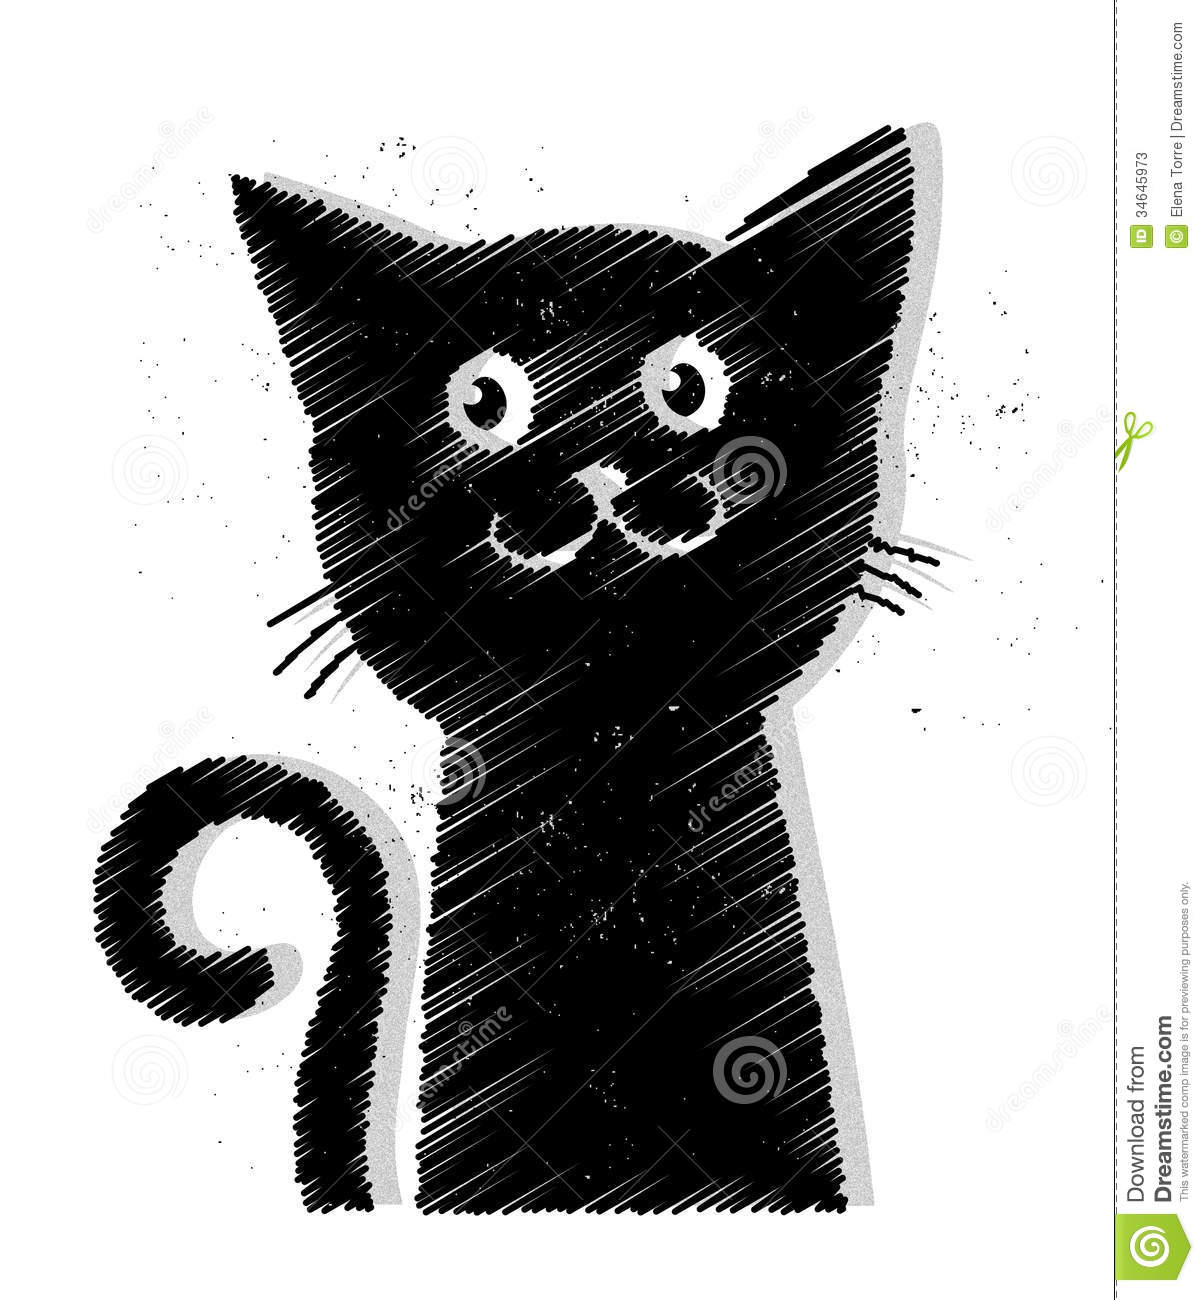 Black Cat Vector Stock Photos - Image: 34645973